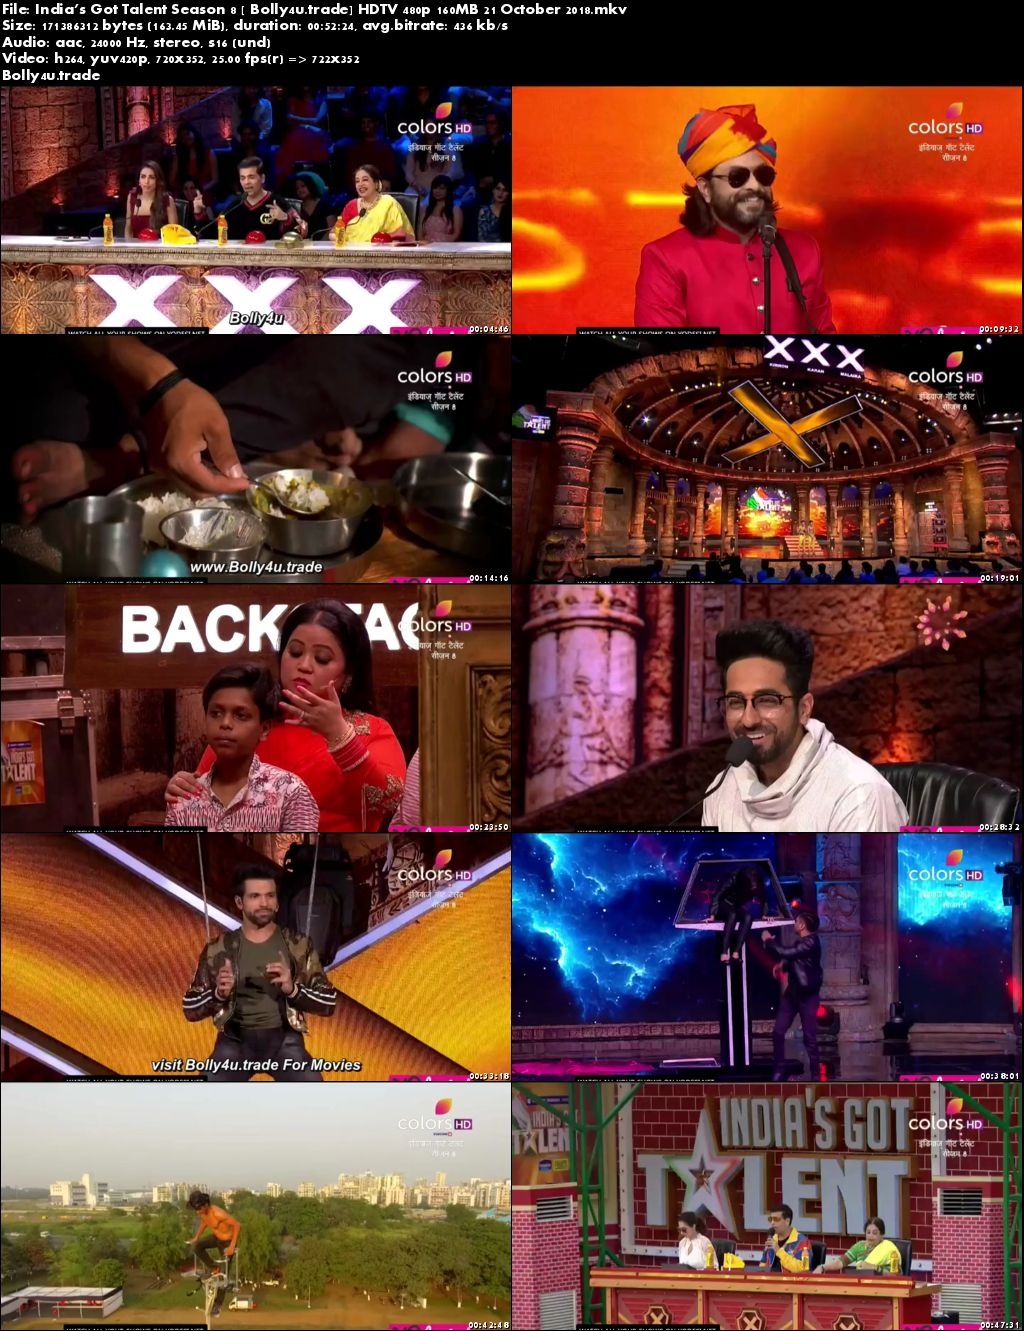 Indias Got Talent Season 8 HDTV 480p 160MB 21 October 2018 Download